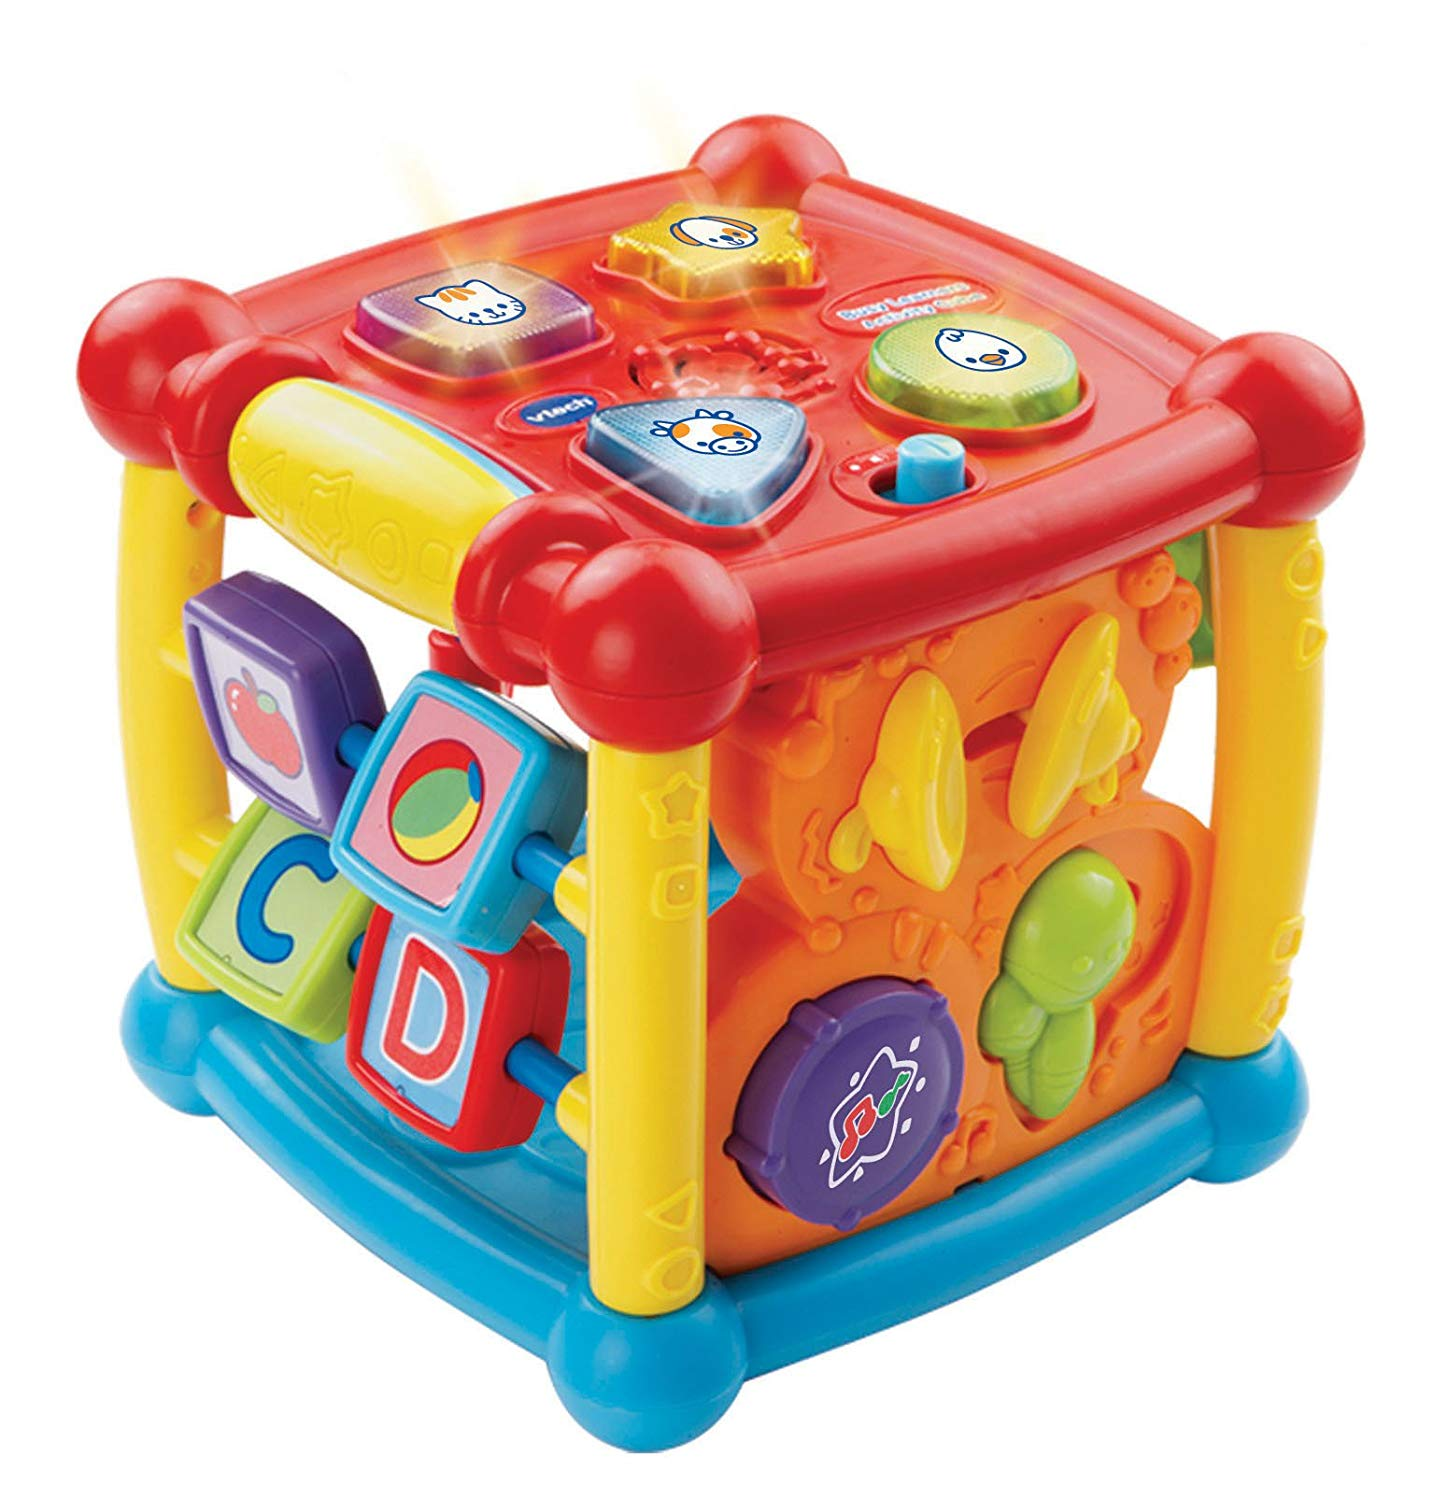 VTech Little Learners Activity Cube